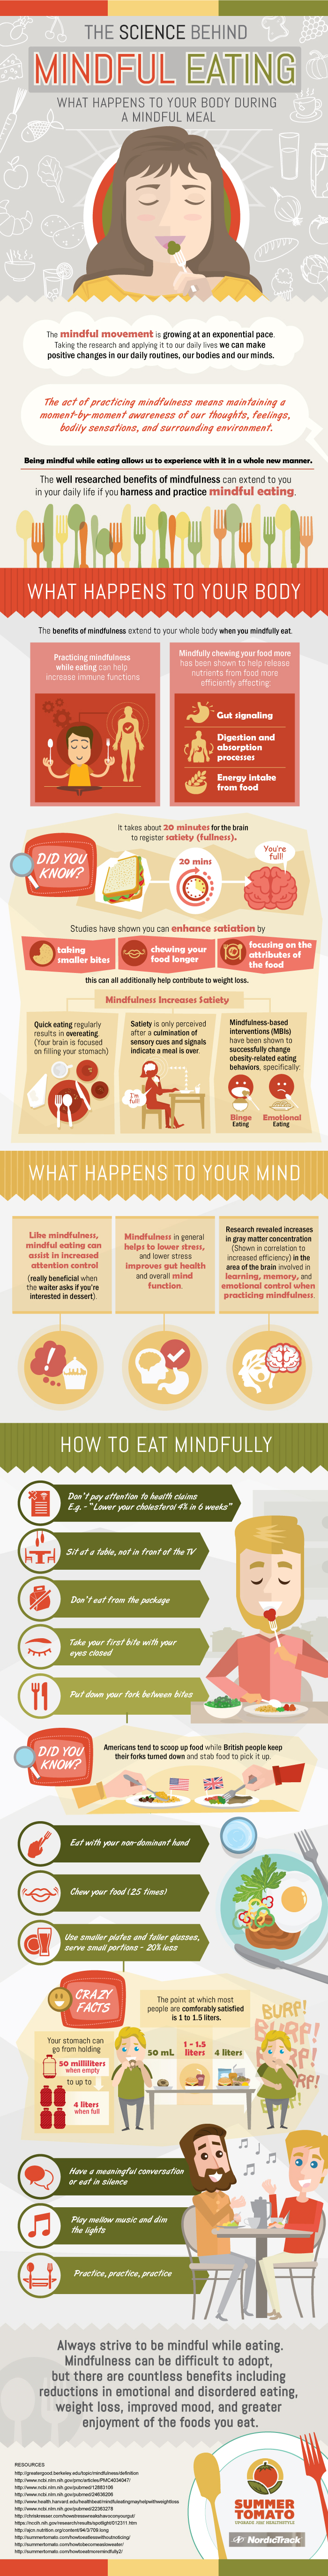 The-Science-Behind-Mindful-Eating